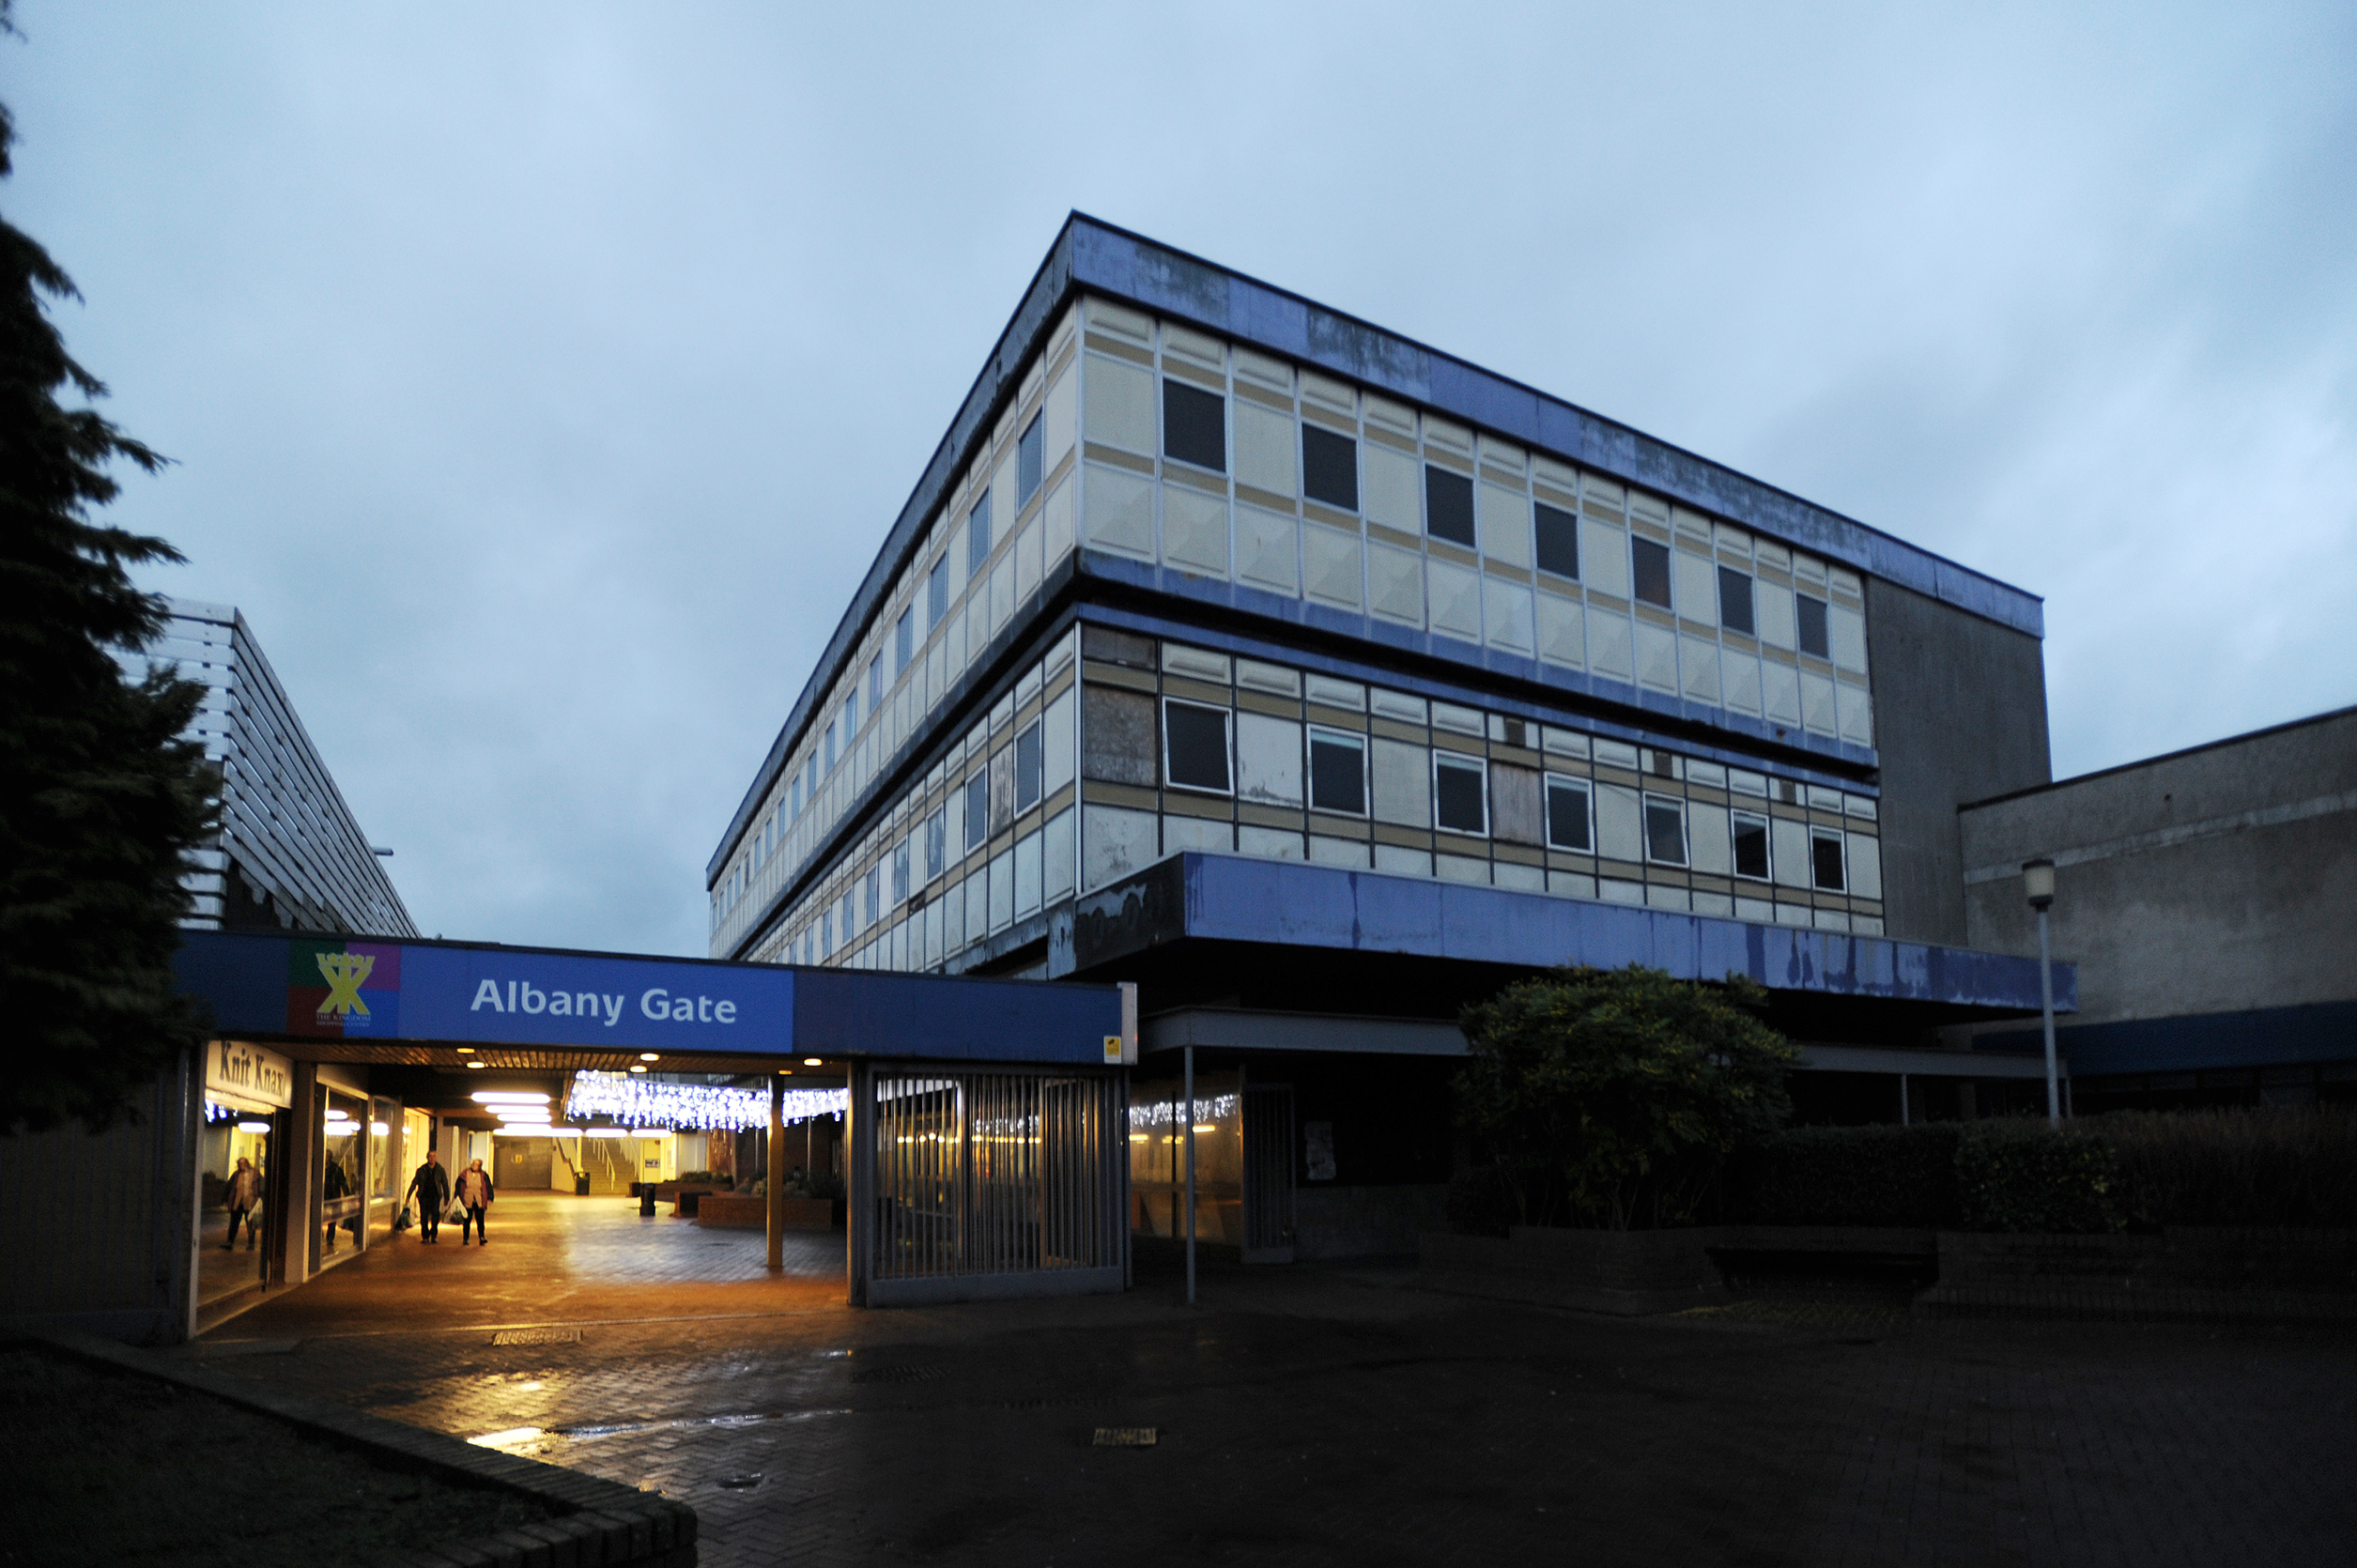 Demolition plans are afoot for the former Co-op department store.